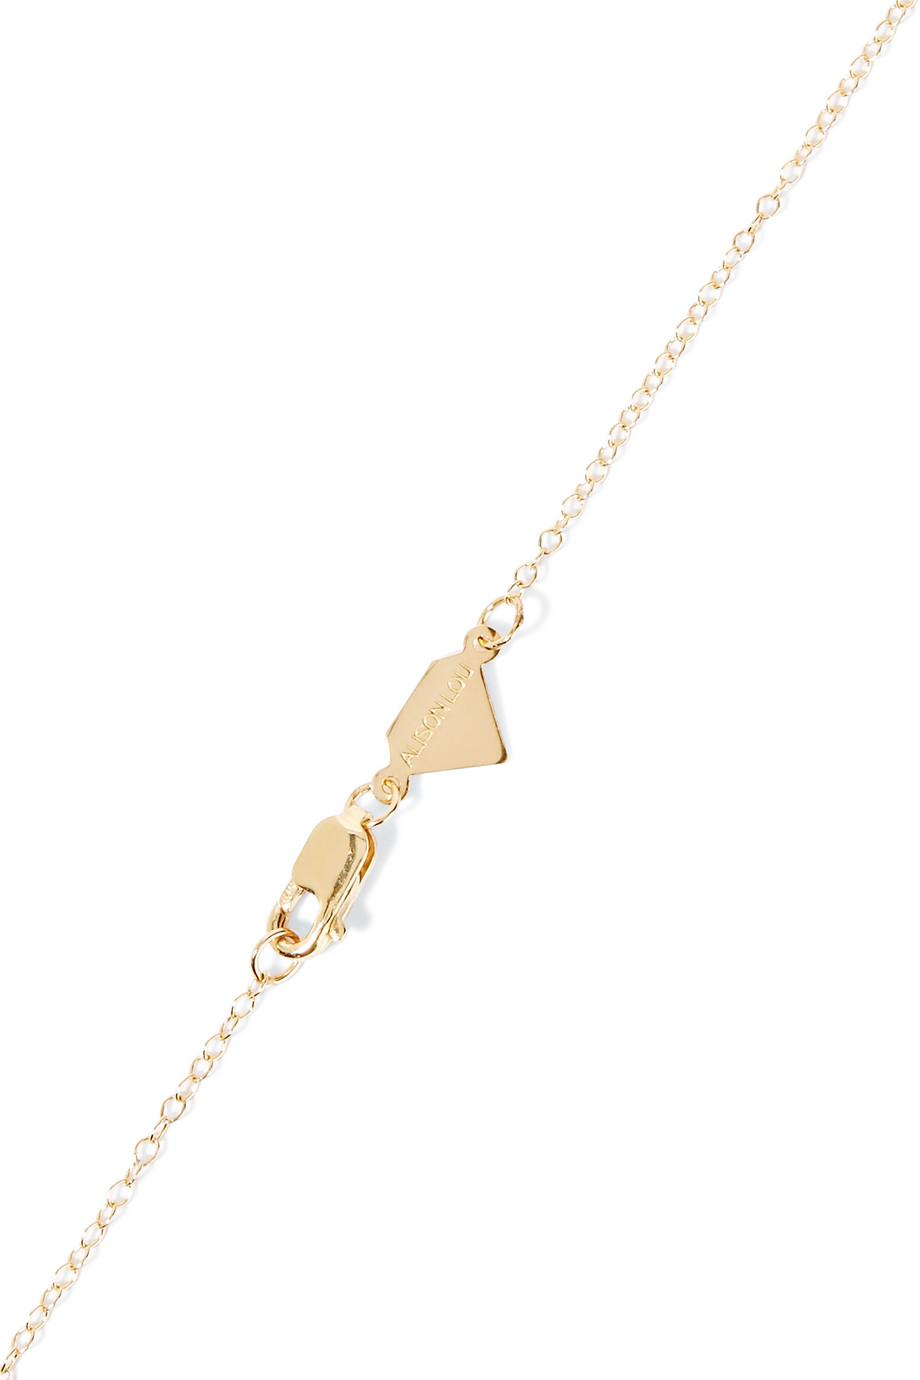 Alison Lou Small Tongue Out Enameled 14-karat Gold Necklace mOntoSnex